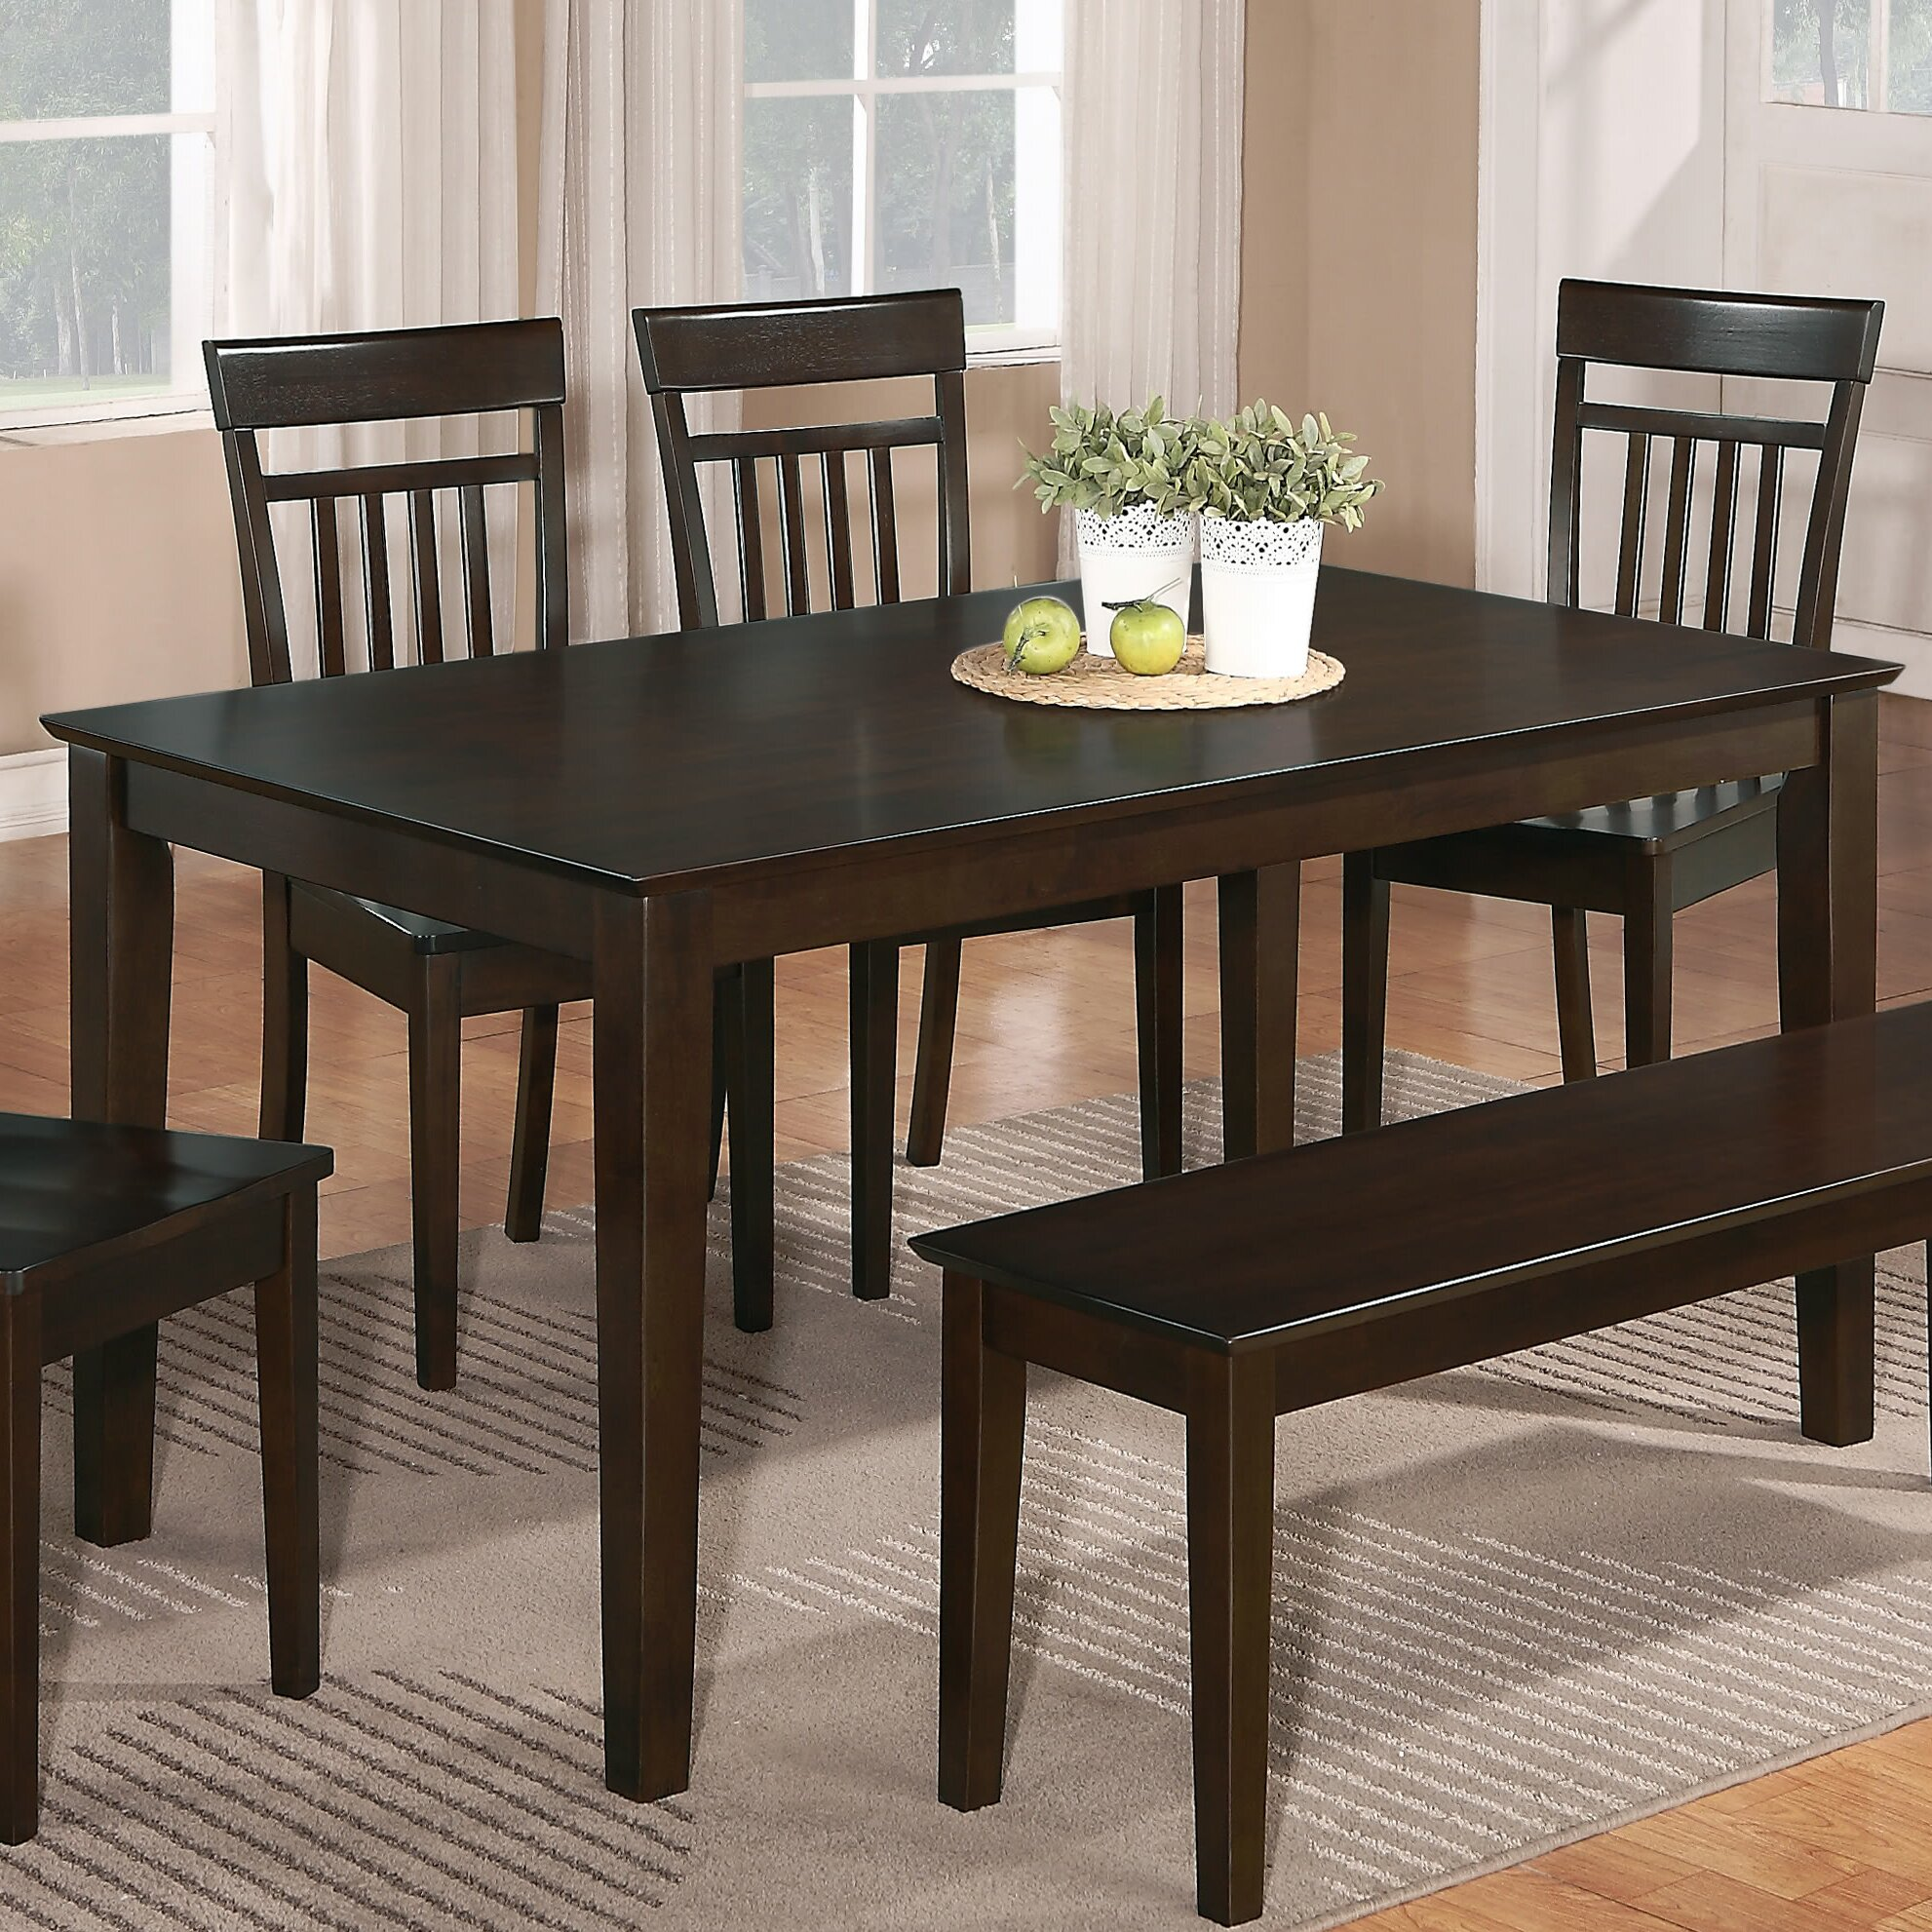 Charlton Home Fienley Dining Table & Reviews | Wayfair